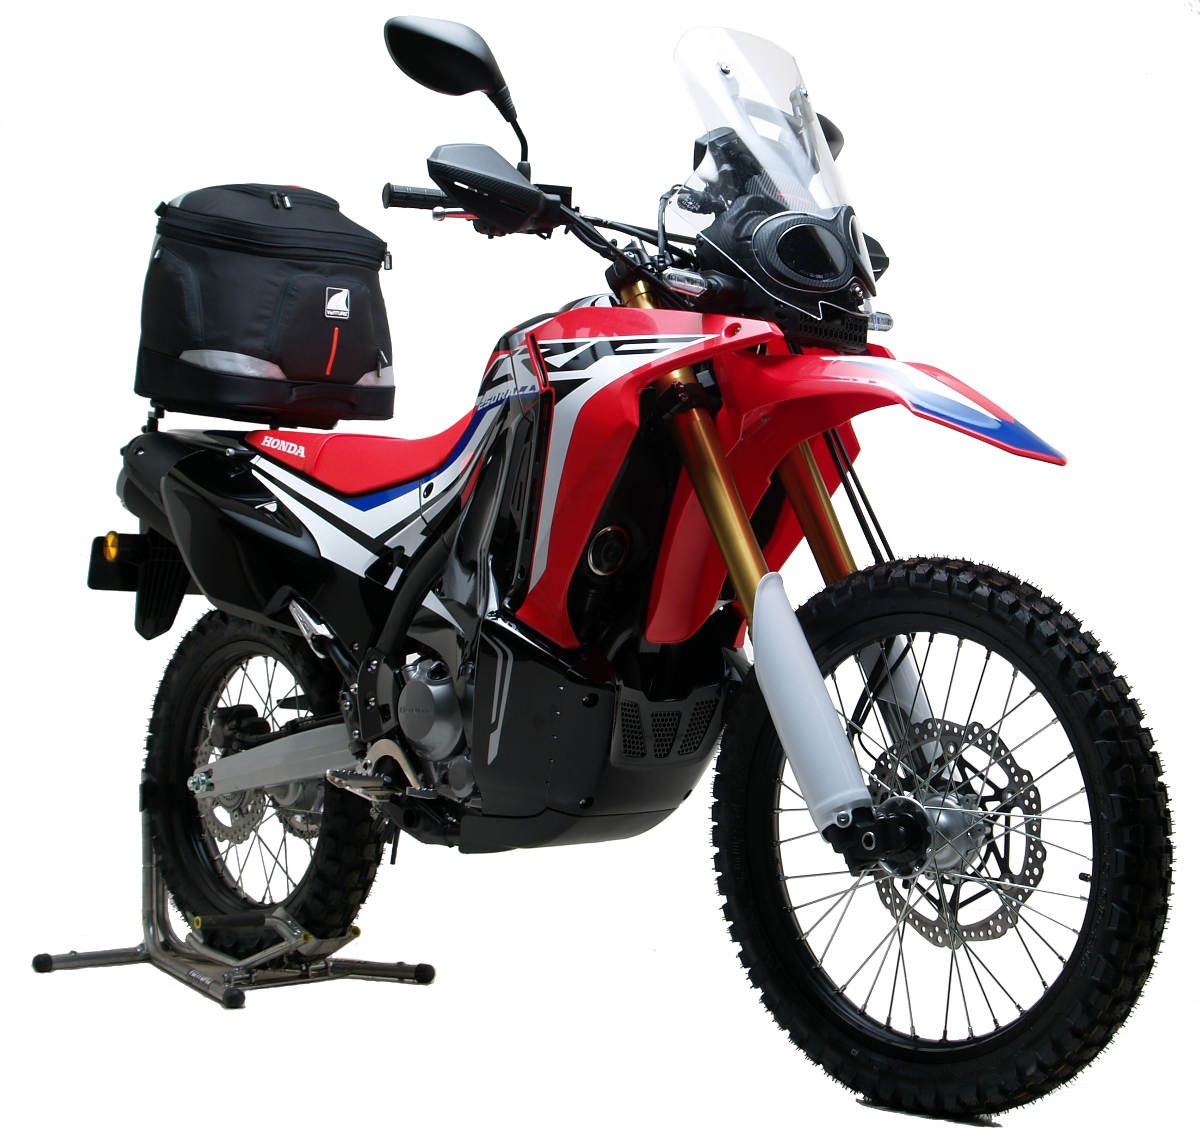 honda crf 250l rally gets the ventura bike-pack luggage system